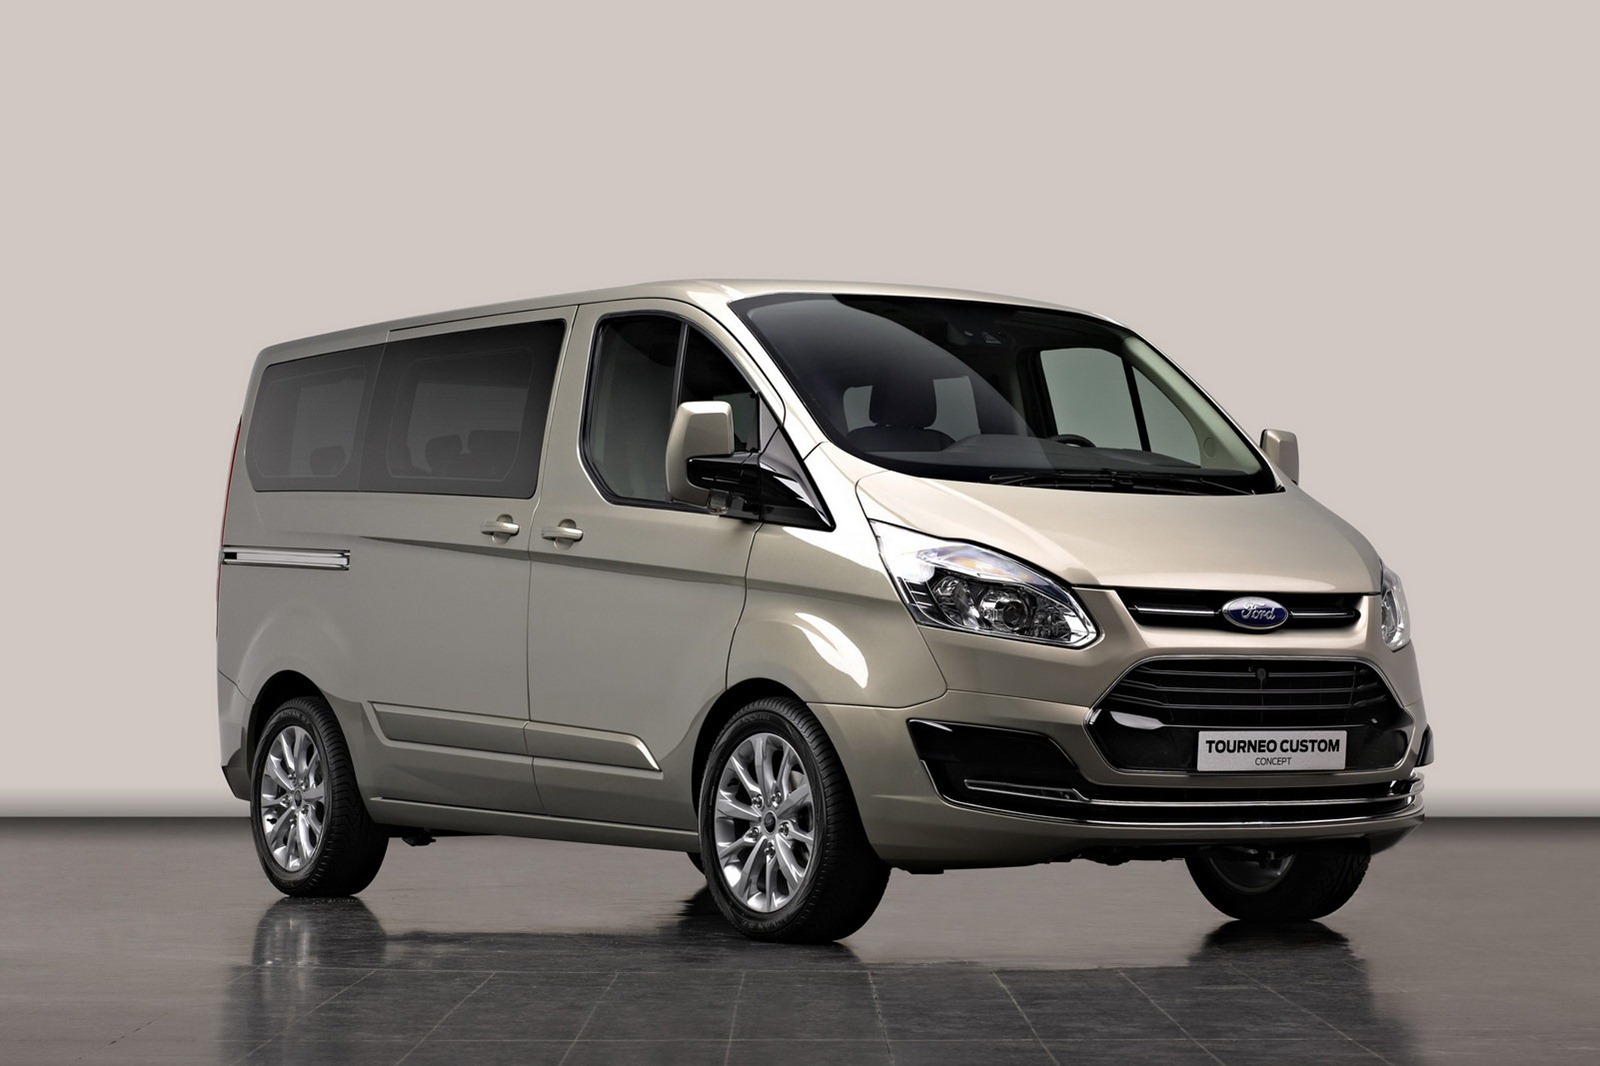 Ford Tourneo Van Concept Ford Tourneo Van Concept ... & Ford Tourneo Van Concept Has Transit Body and Focus Face ... markmcfarlin.com